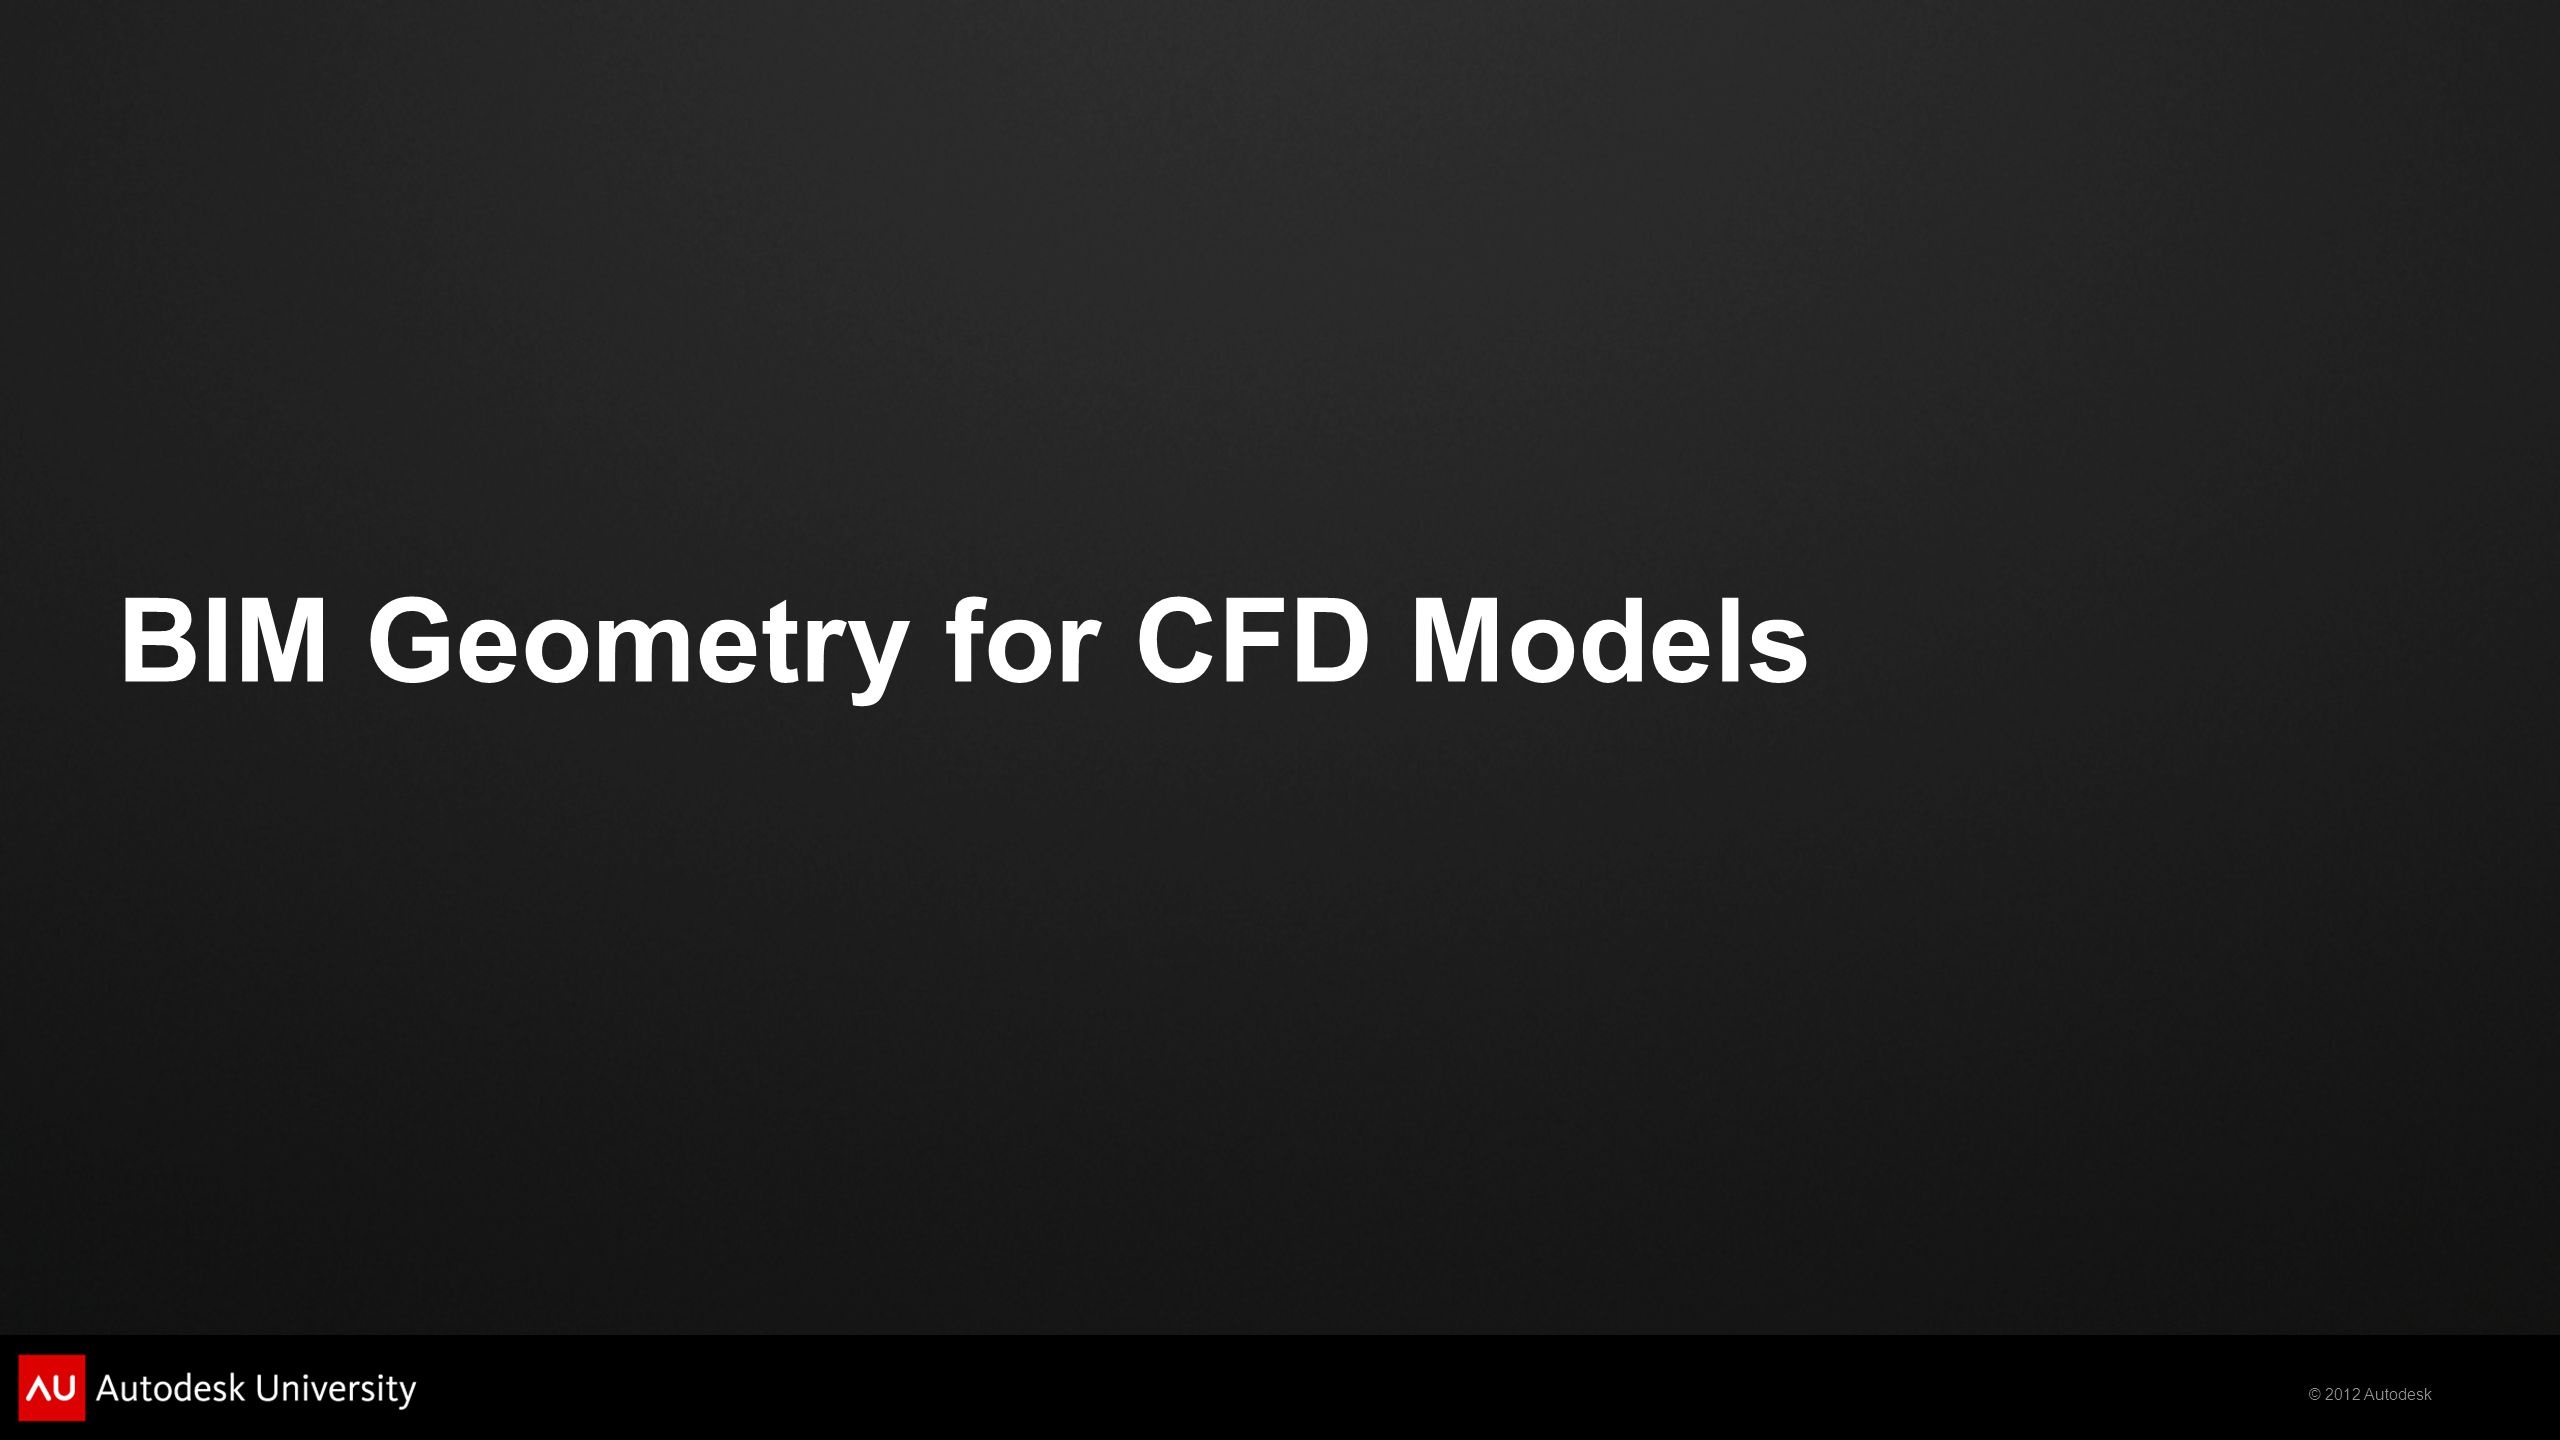 BIM Geometry for CFD Models